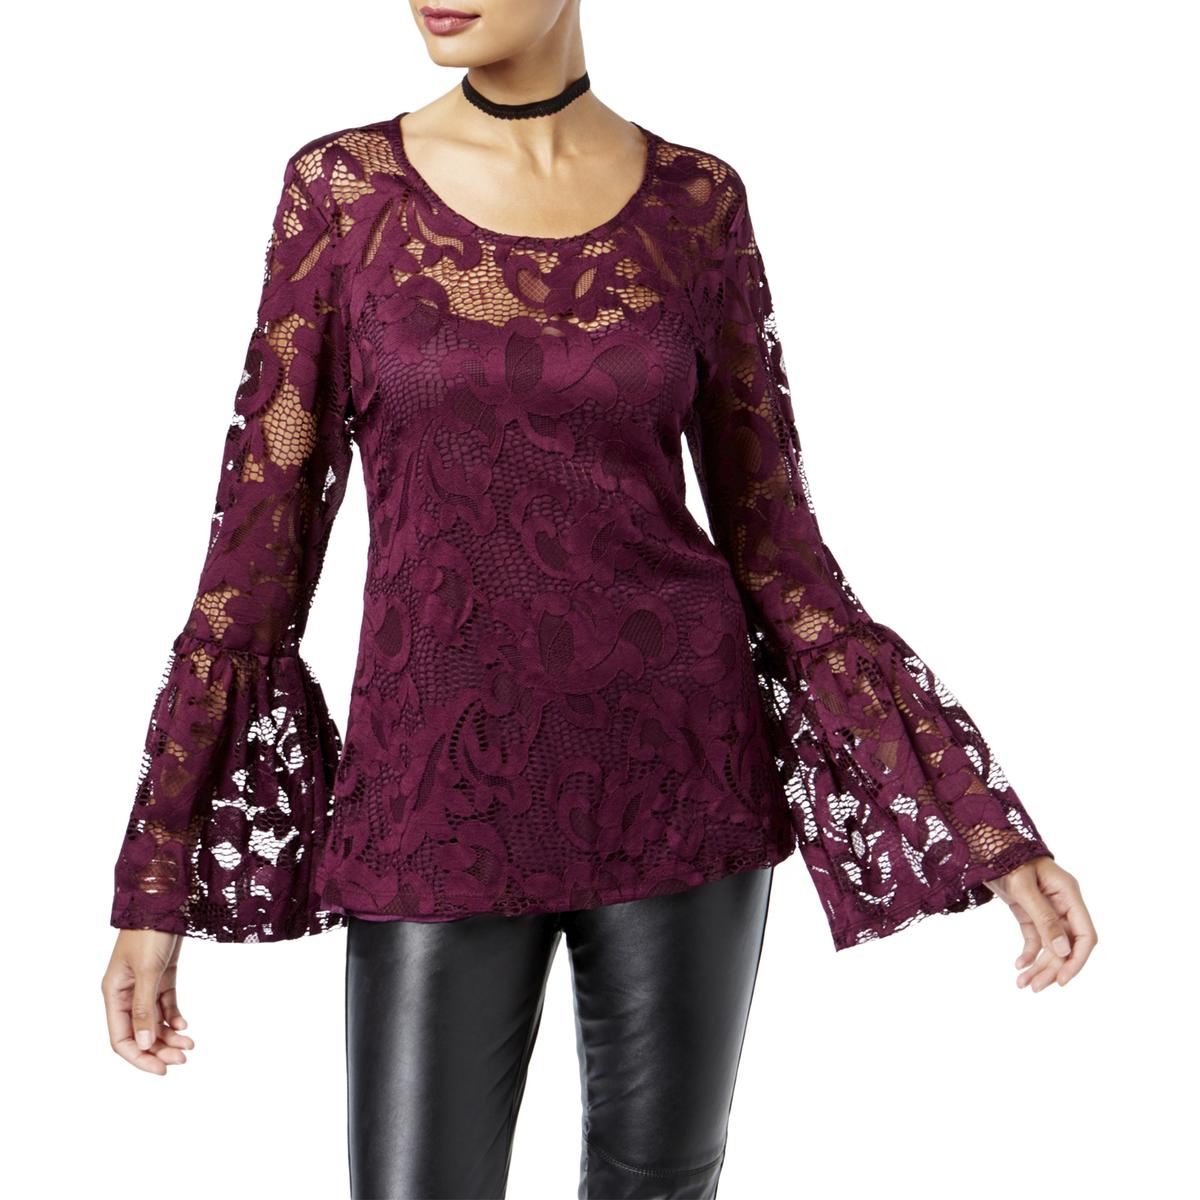 Details about INC Womens Lace Bell Sleeves Night Out Dress Top Blouse BHFO  5385 25d6fb254